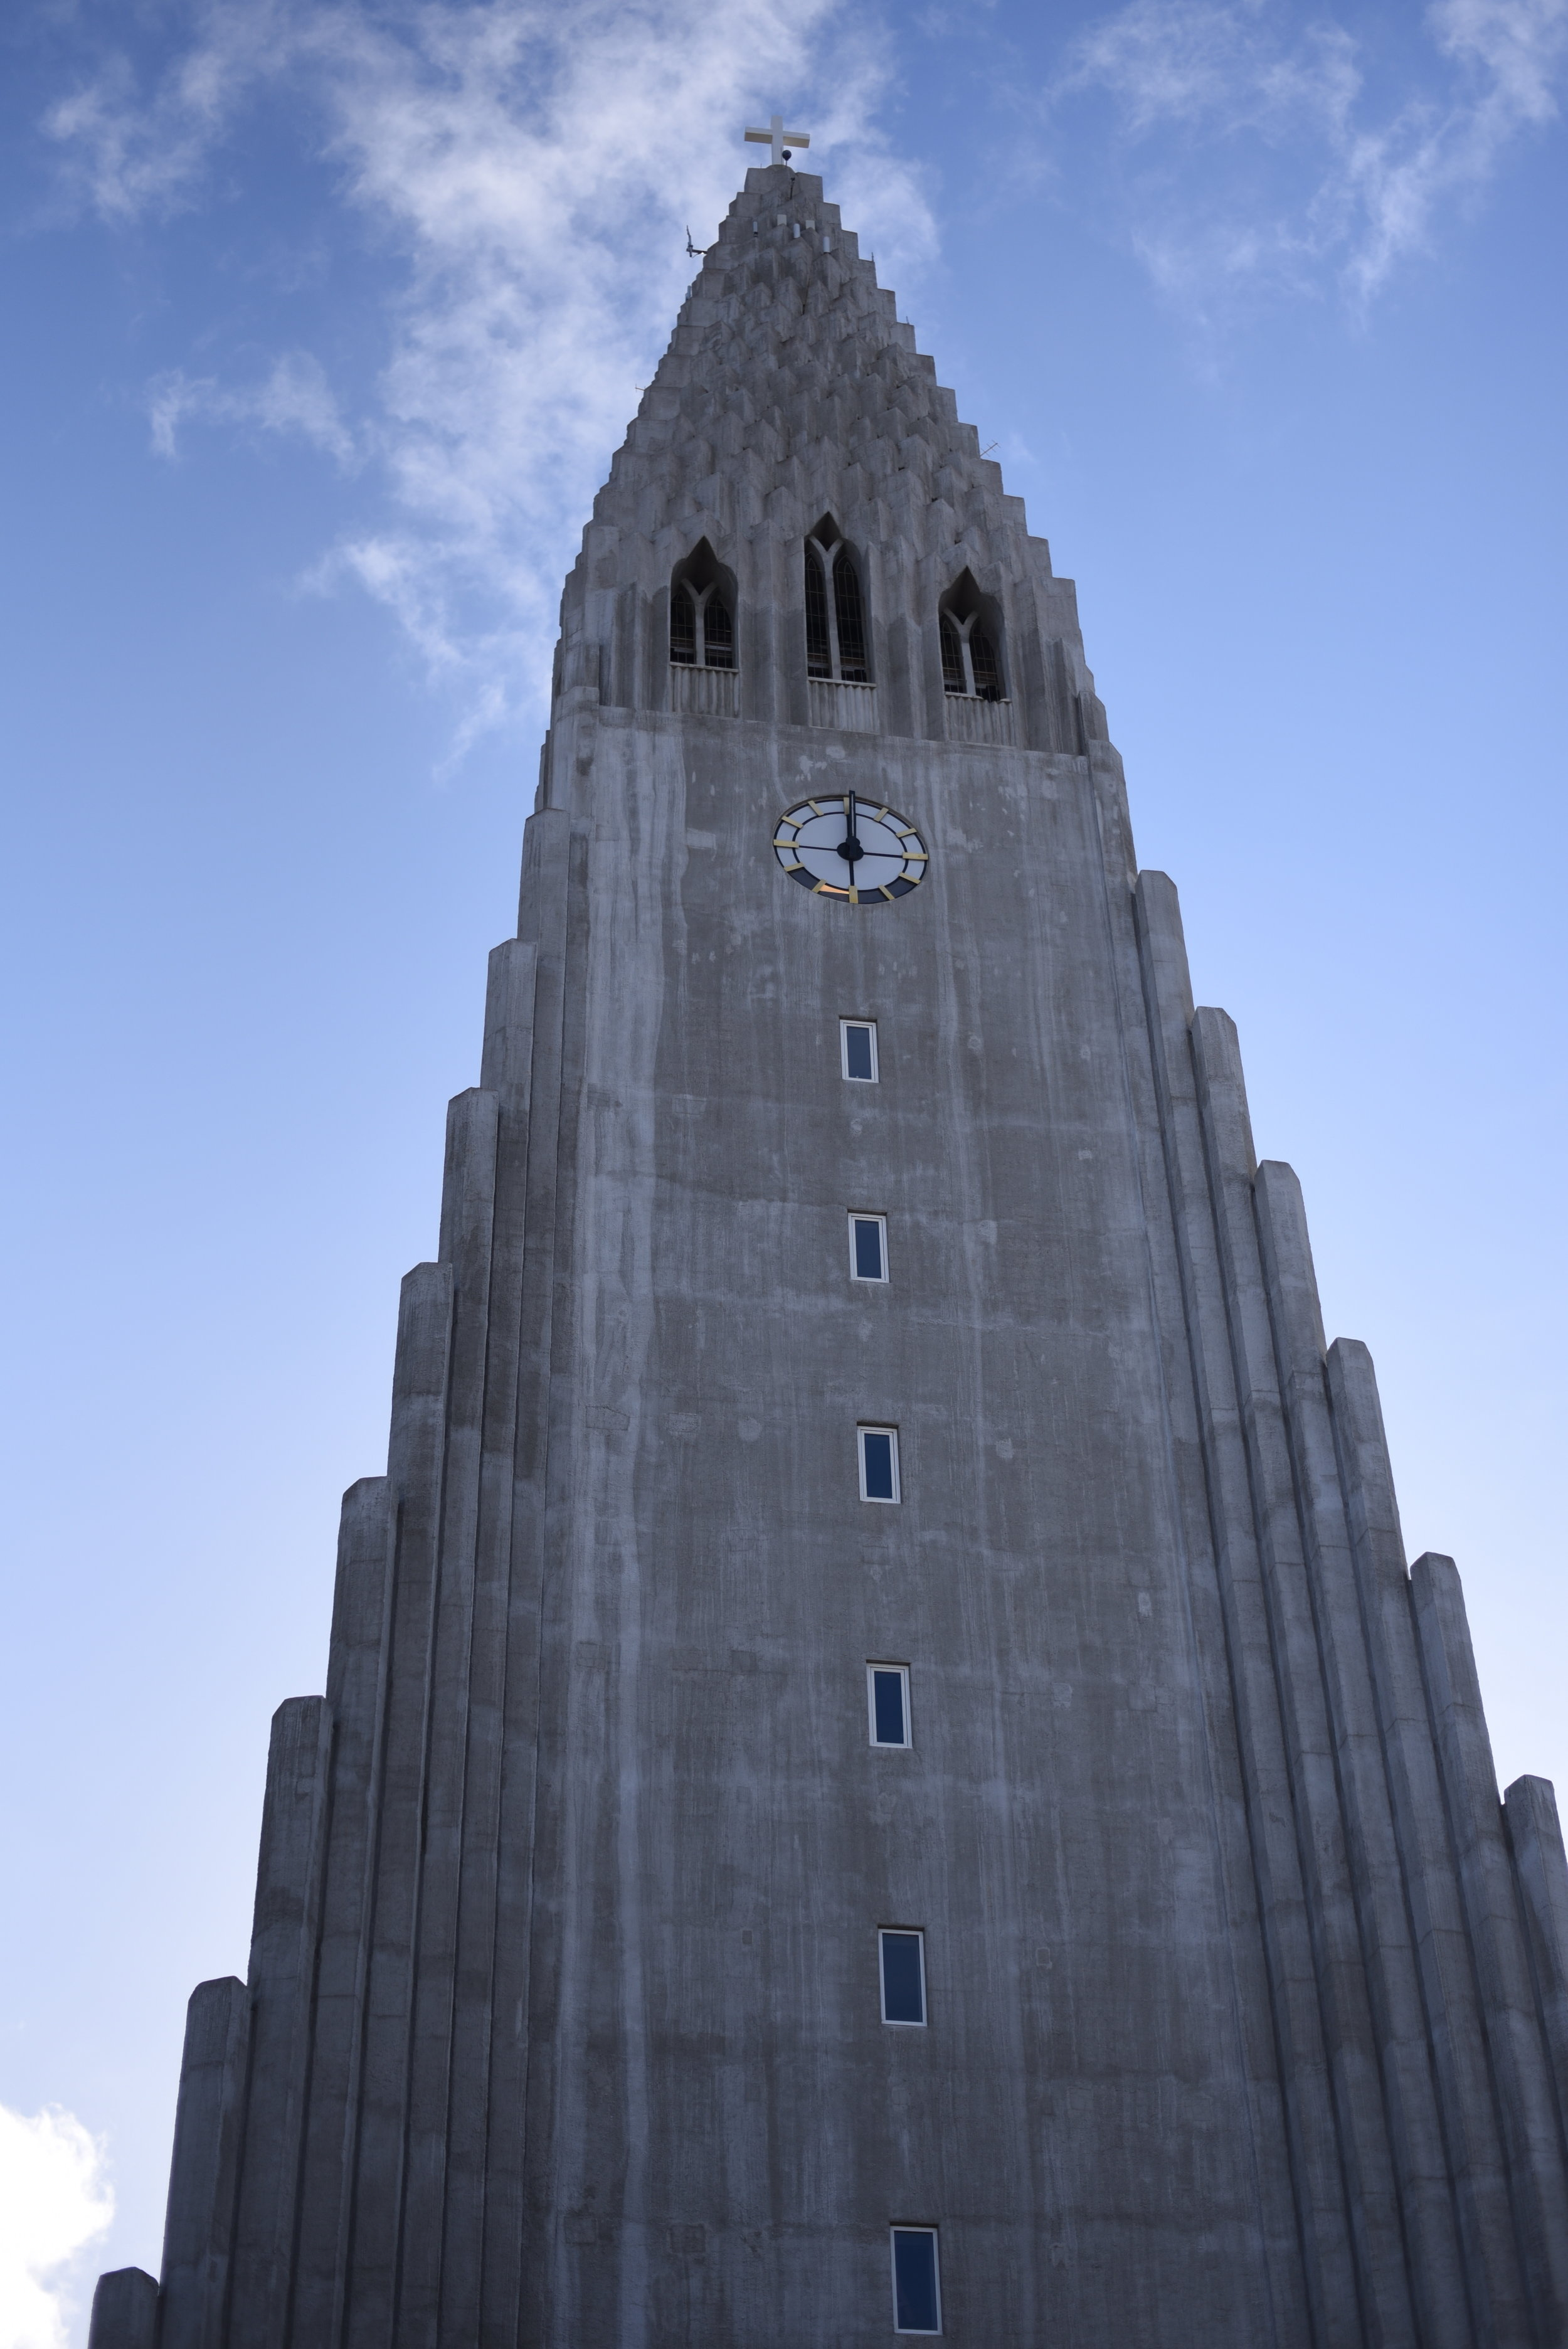 Hallgrímskirkja  (side note: this photo wasn't taken on the first day. Don't let those blue skies fool you!)